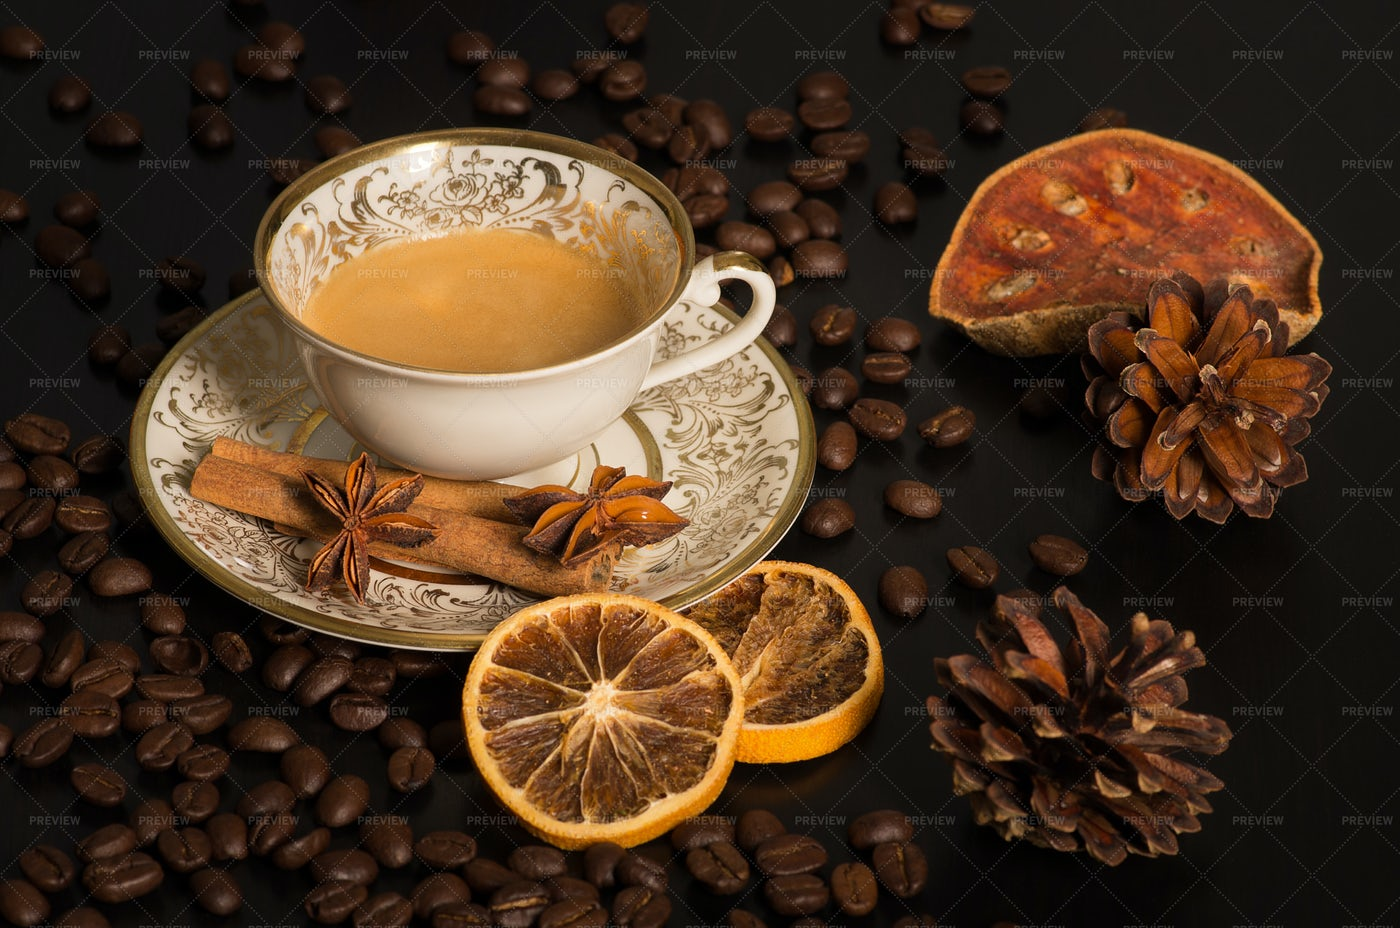 An Old Coffee Cup With Decoration: Stock Photos